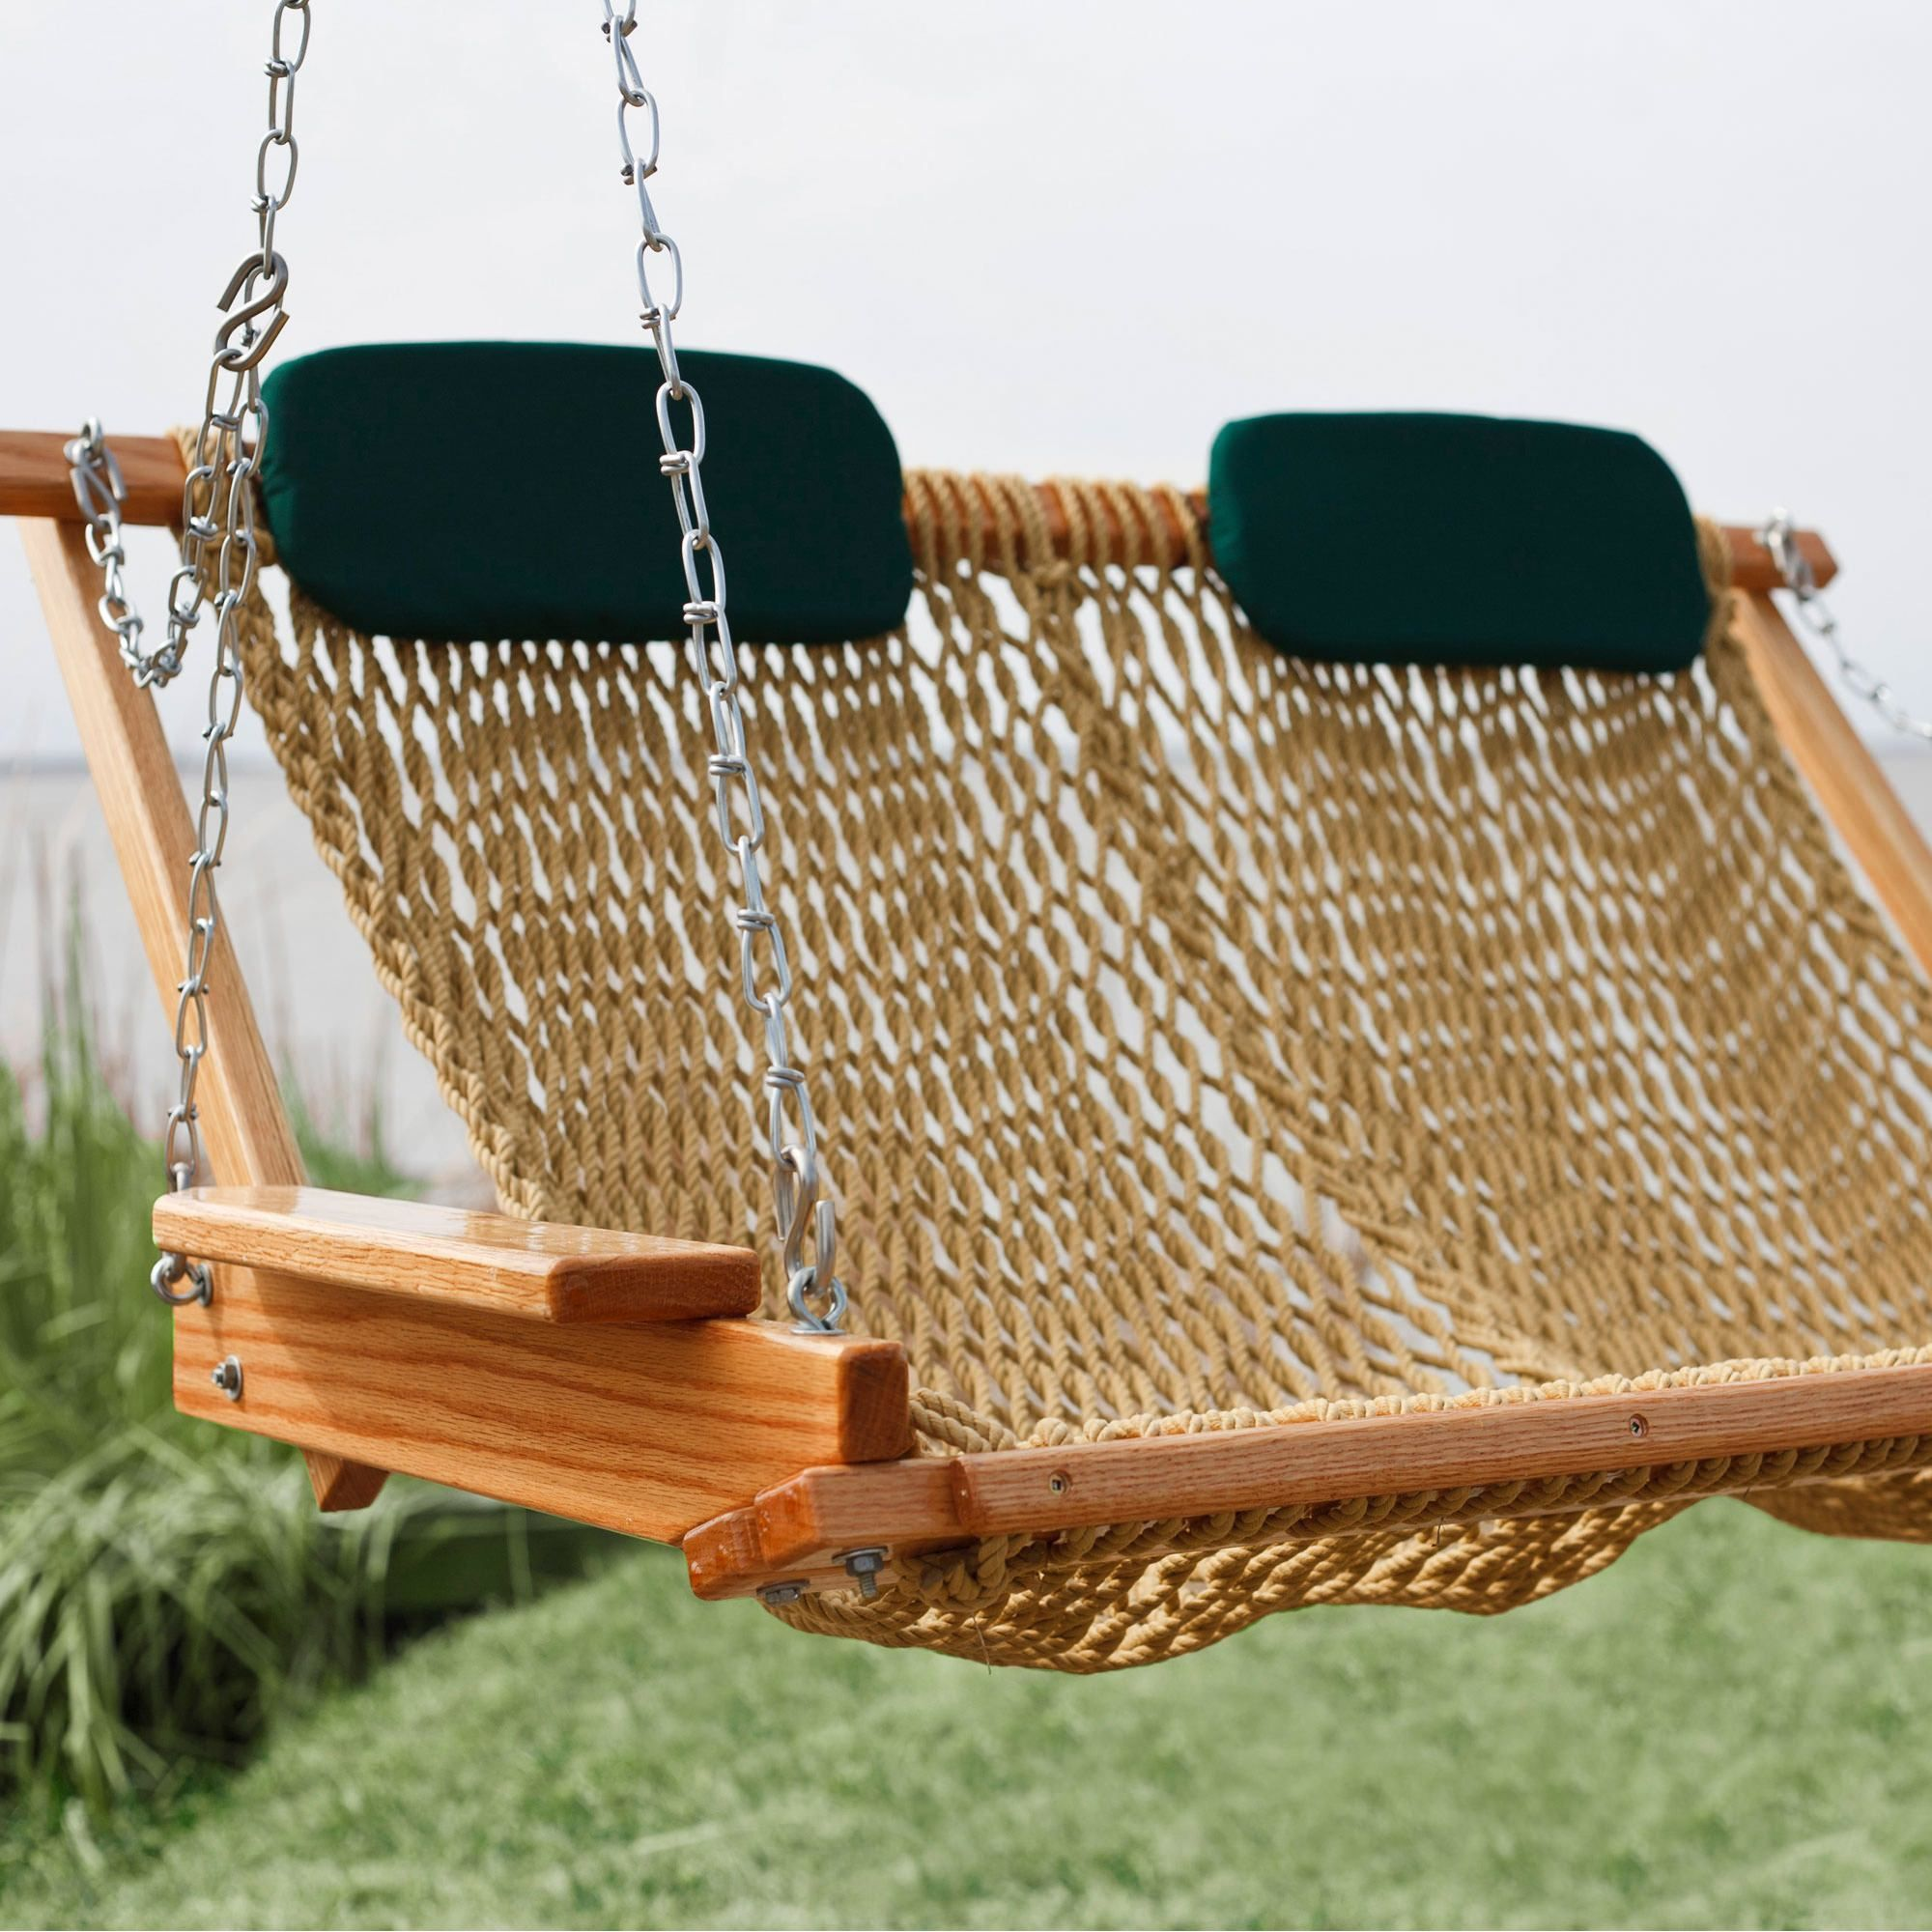 shop our full line of nags head hammocks hammock swings inspired by the salt air clear skies and good  pany  engaging hammock chairs for simple outdoor hammock furniture      rh   pinterest